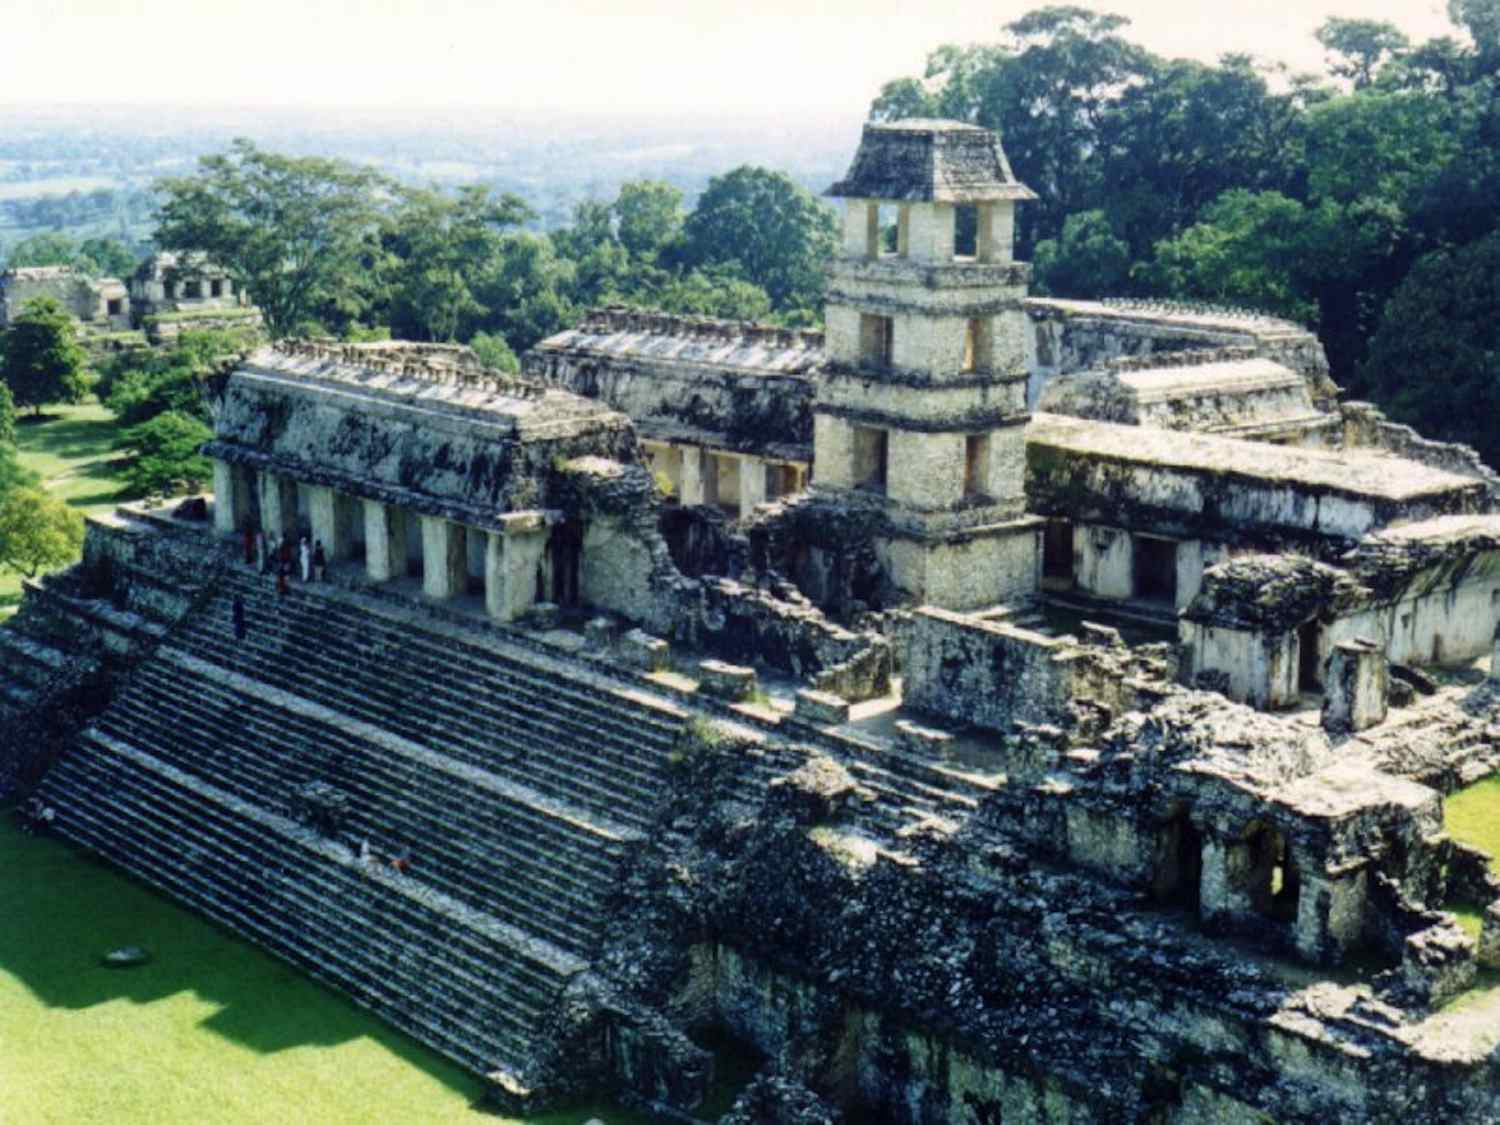 Ruins of a Mayan palace in the jungle on a sunny day.